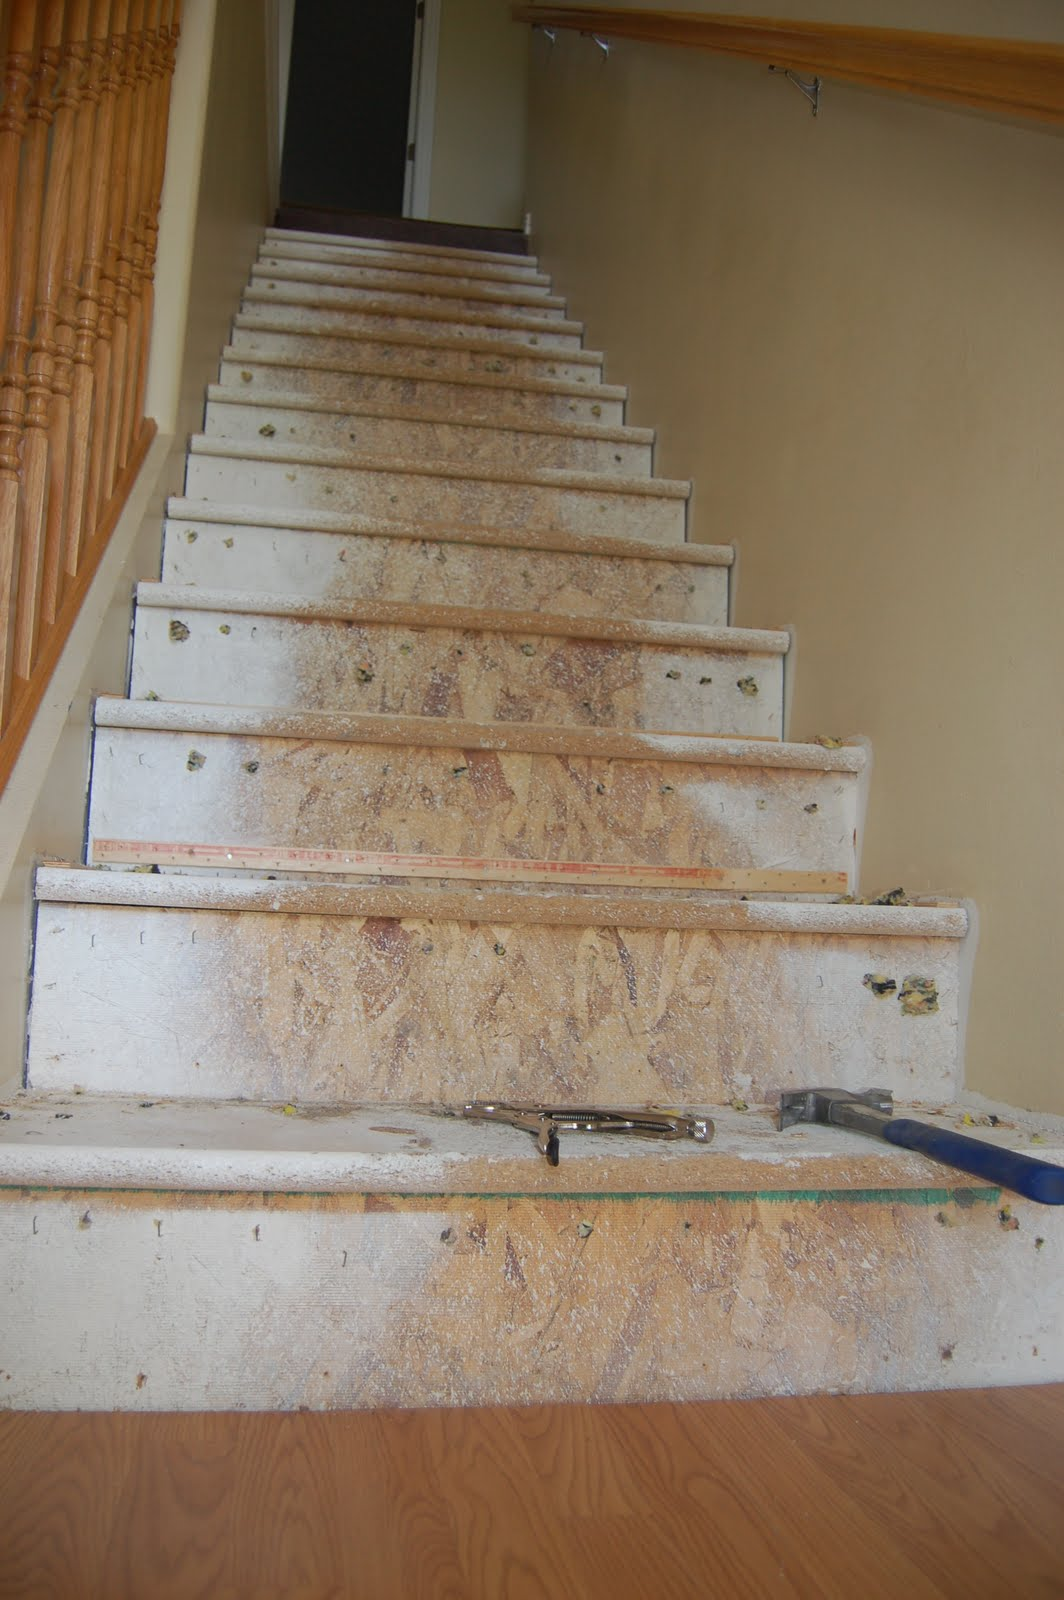 High Quality This Is Exciting, Lovely Particle Board Risers And Tread...... Wish Us Luck!